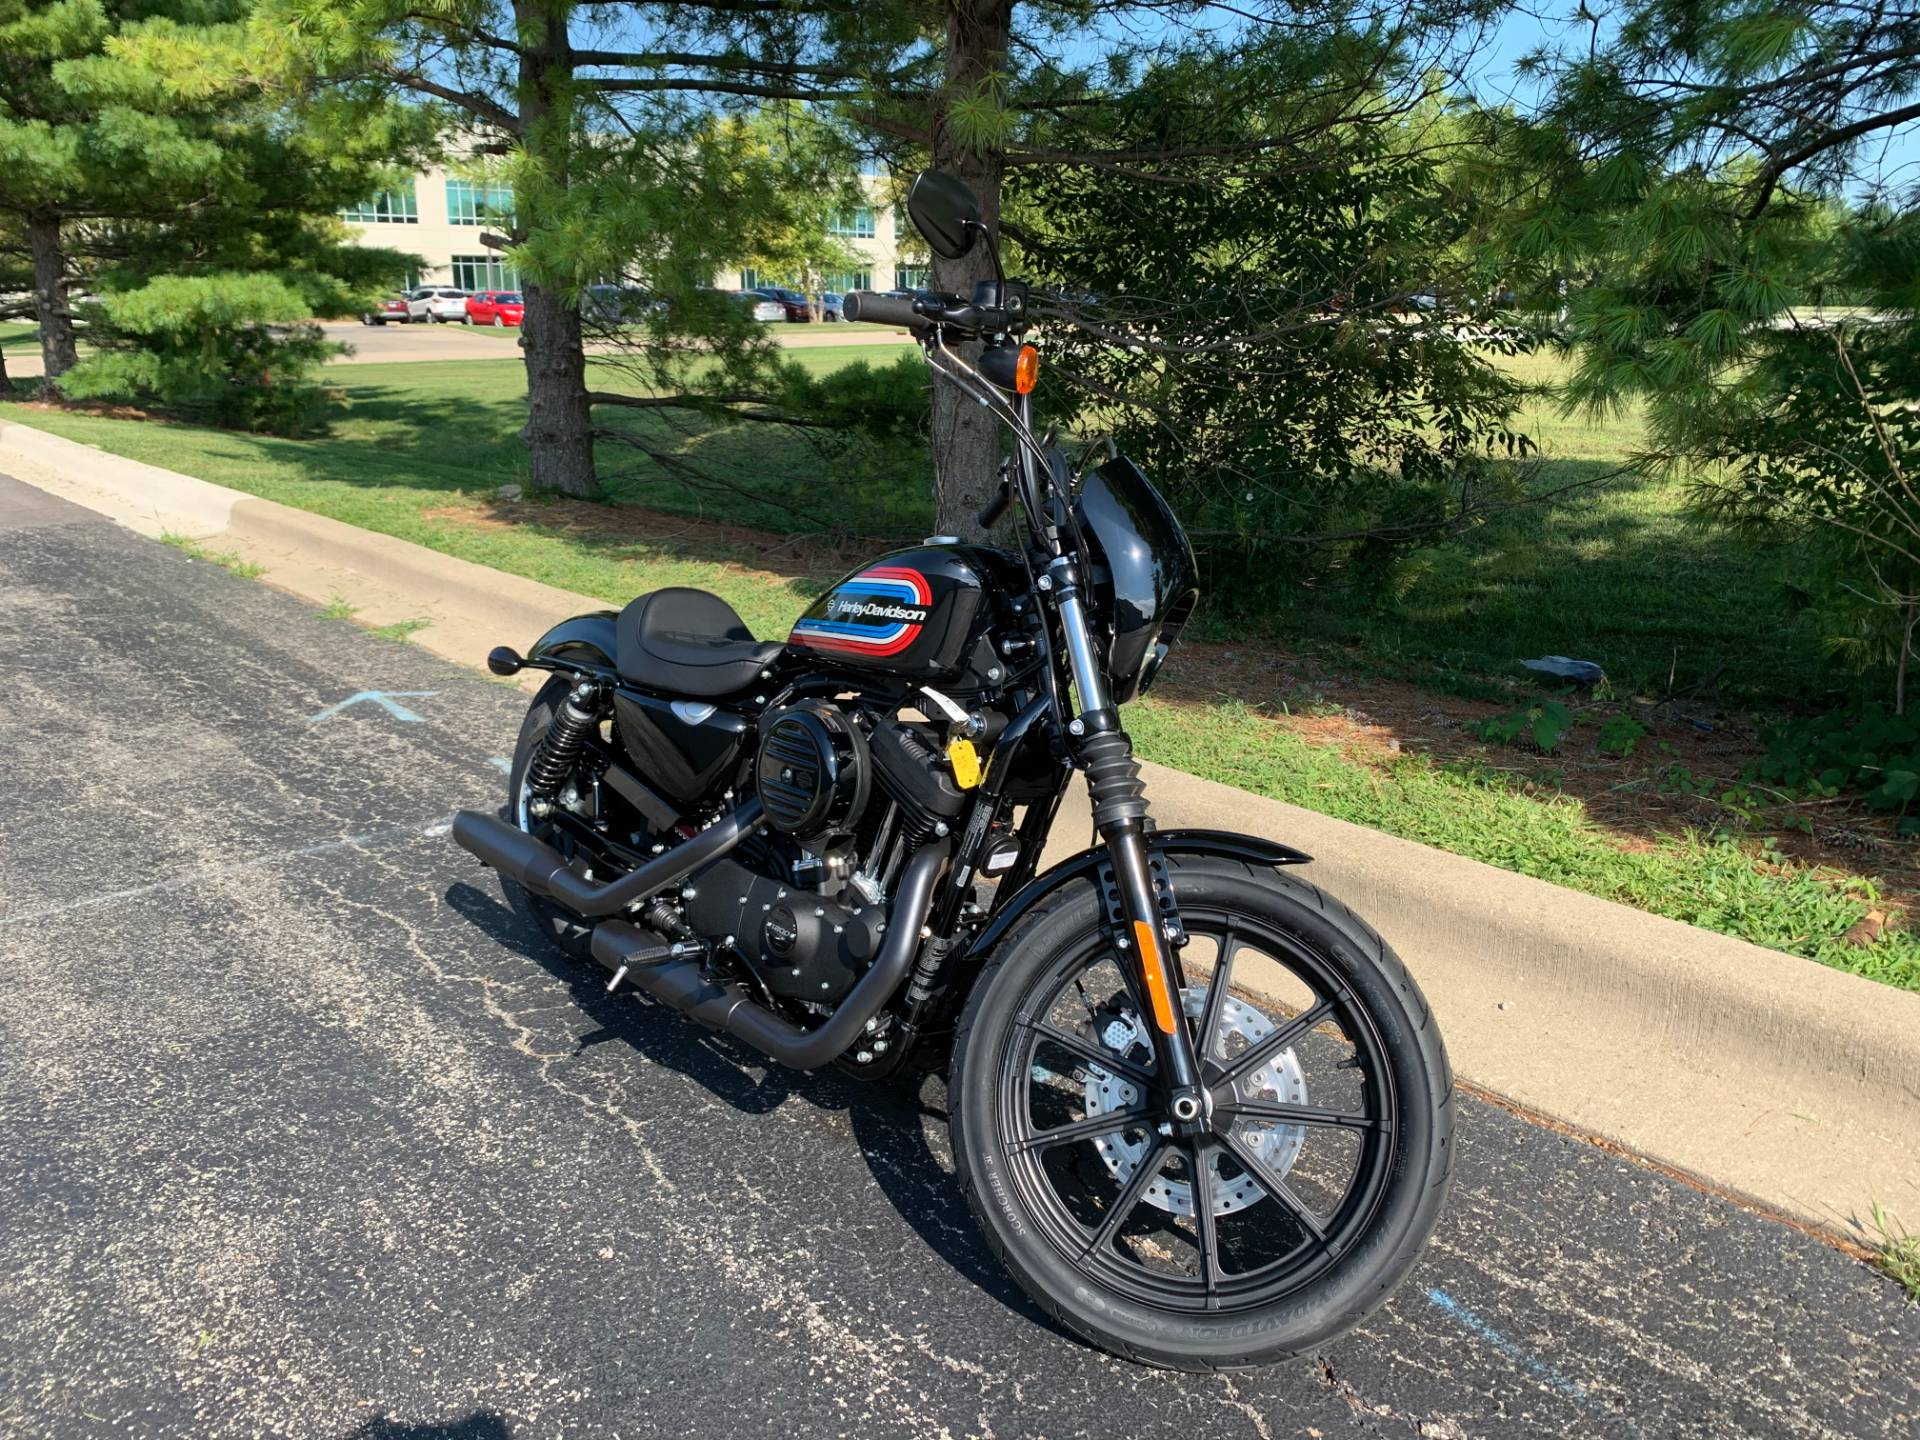 2020 Harley-Davidson Iron 1200 in Forsyth, Illinois - Photo 2